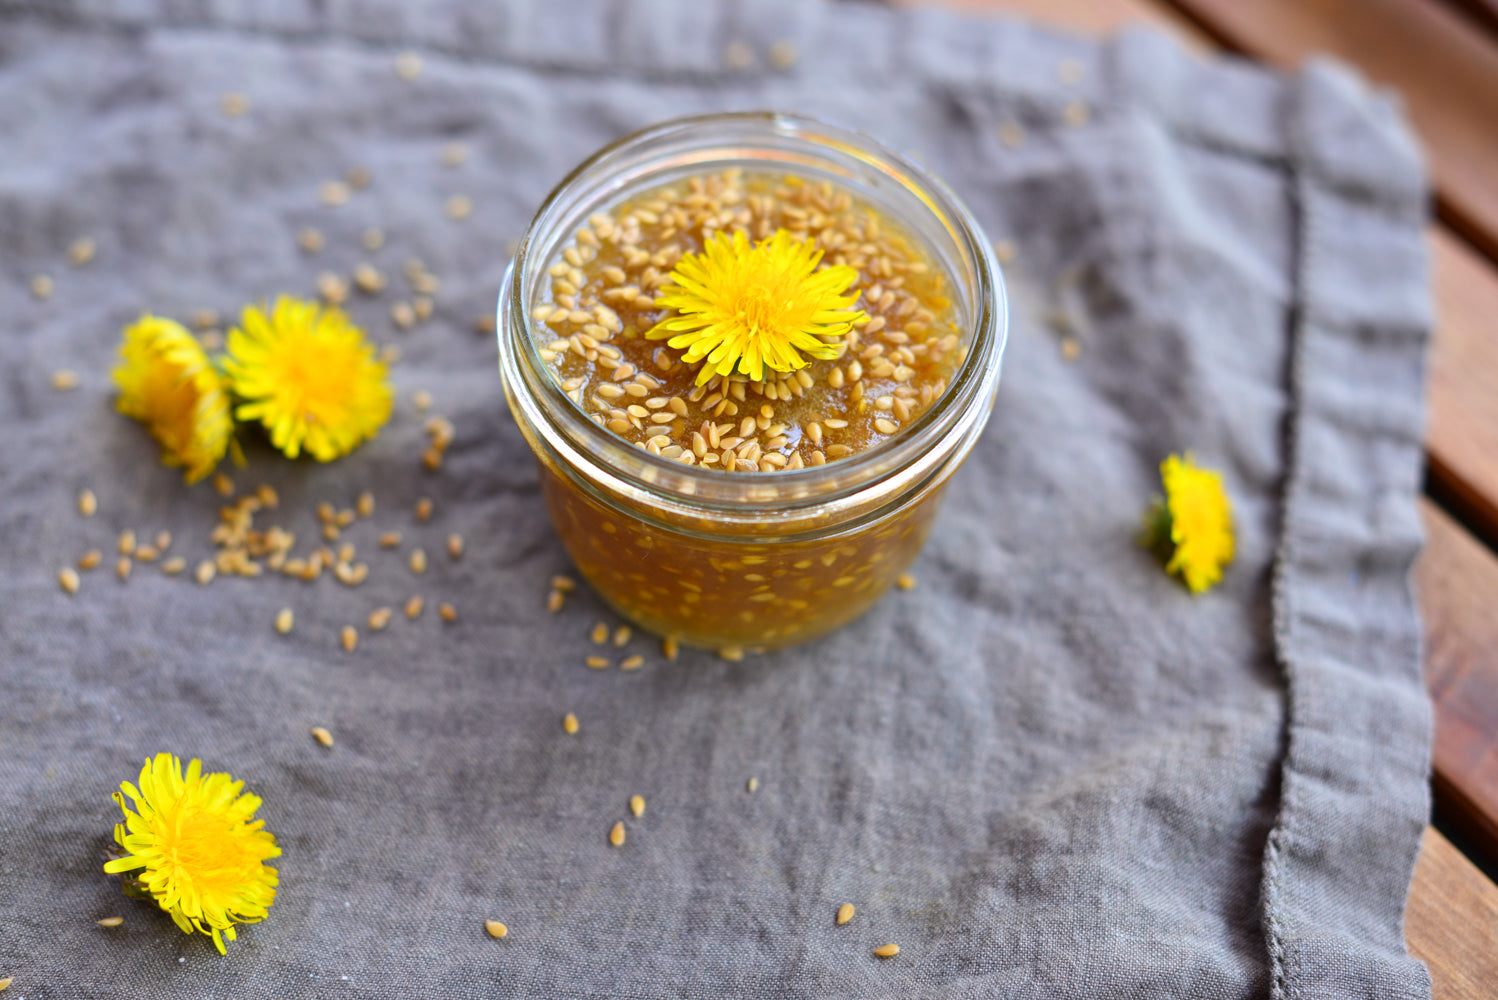 Wholesome Linen Blog - Dandelion Flower & Flax Seed Jam Recipe